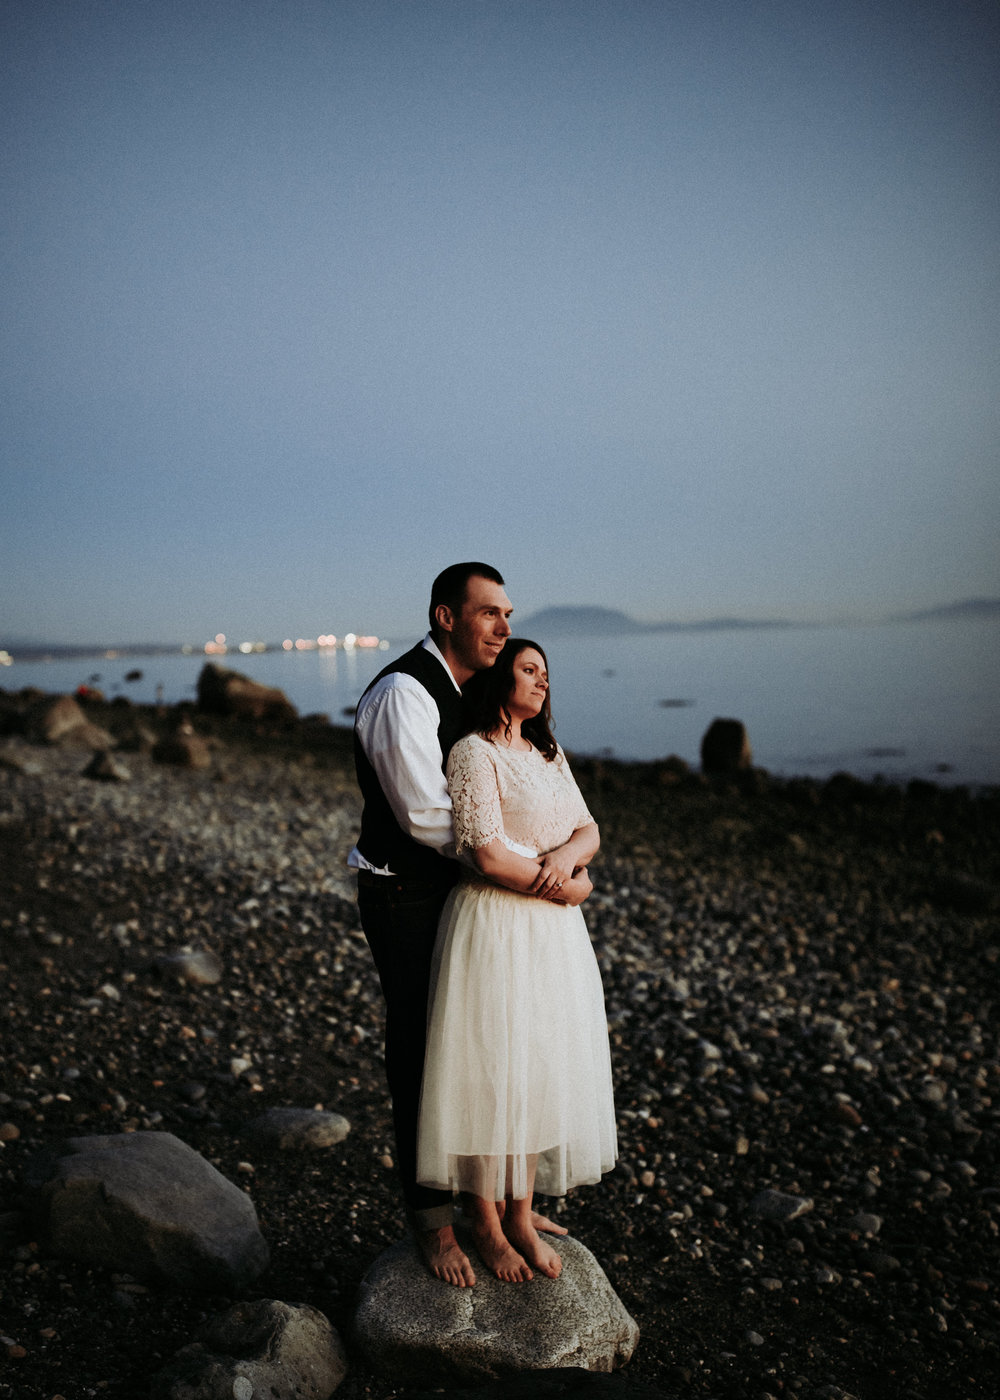 Engagement-Photographer-Bellingham-WA-Brianne-Bell-Photograpy-(Coral)-9.jpg